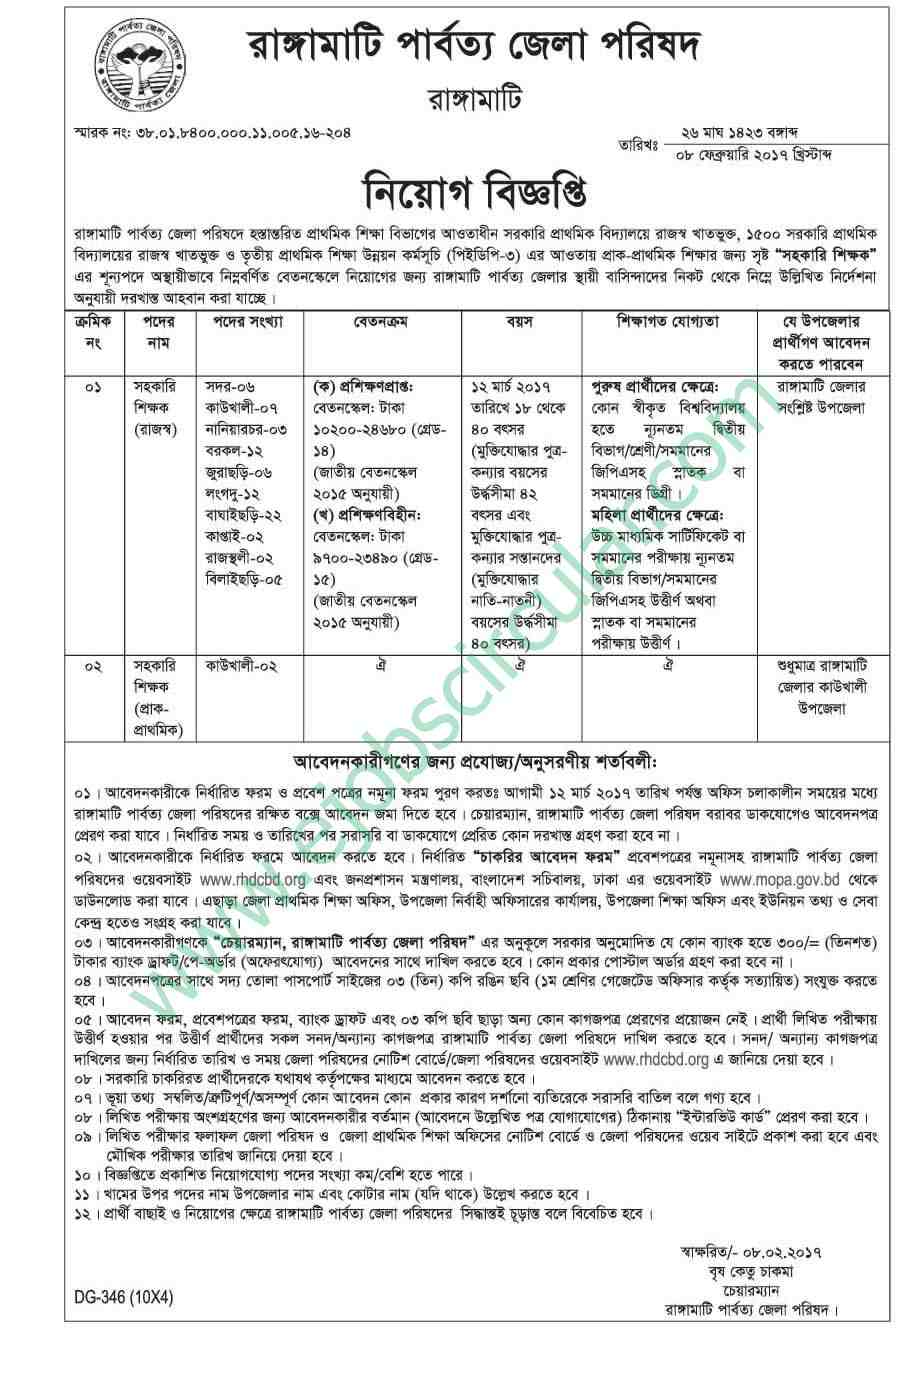 Primary school teacher application form 2012 sei80.com 2018